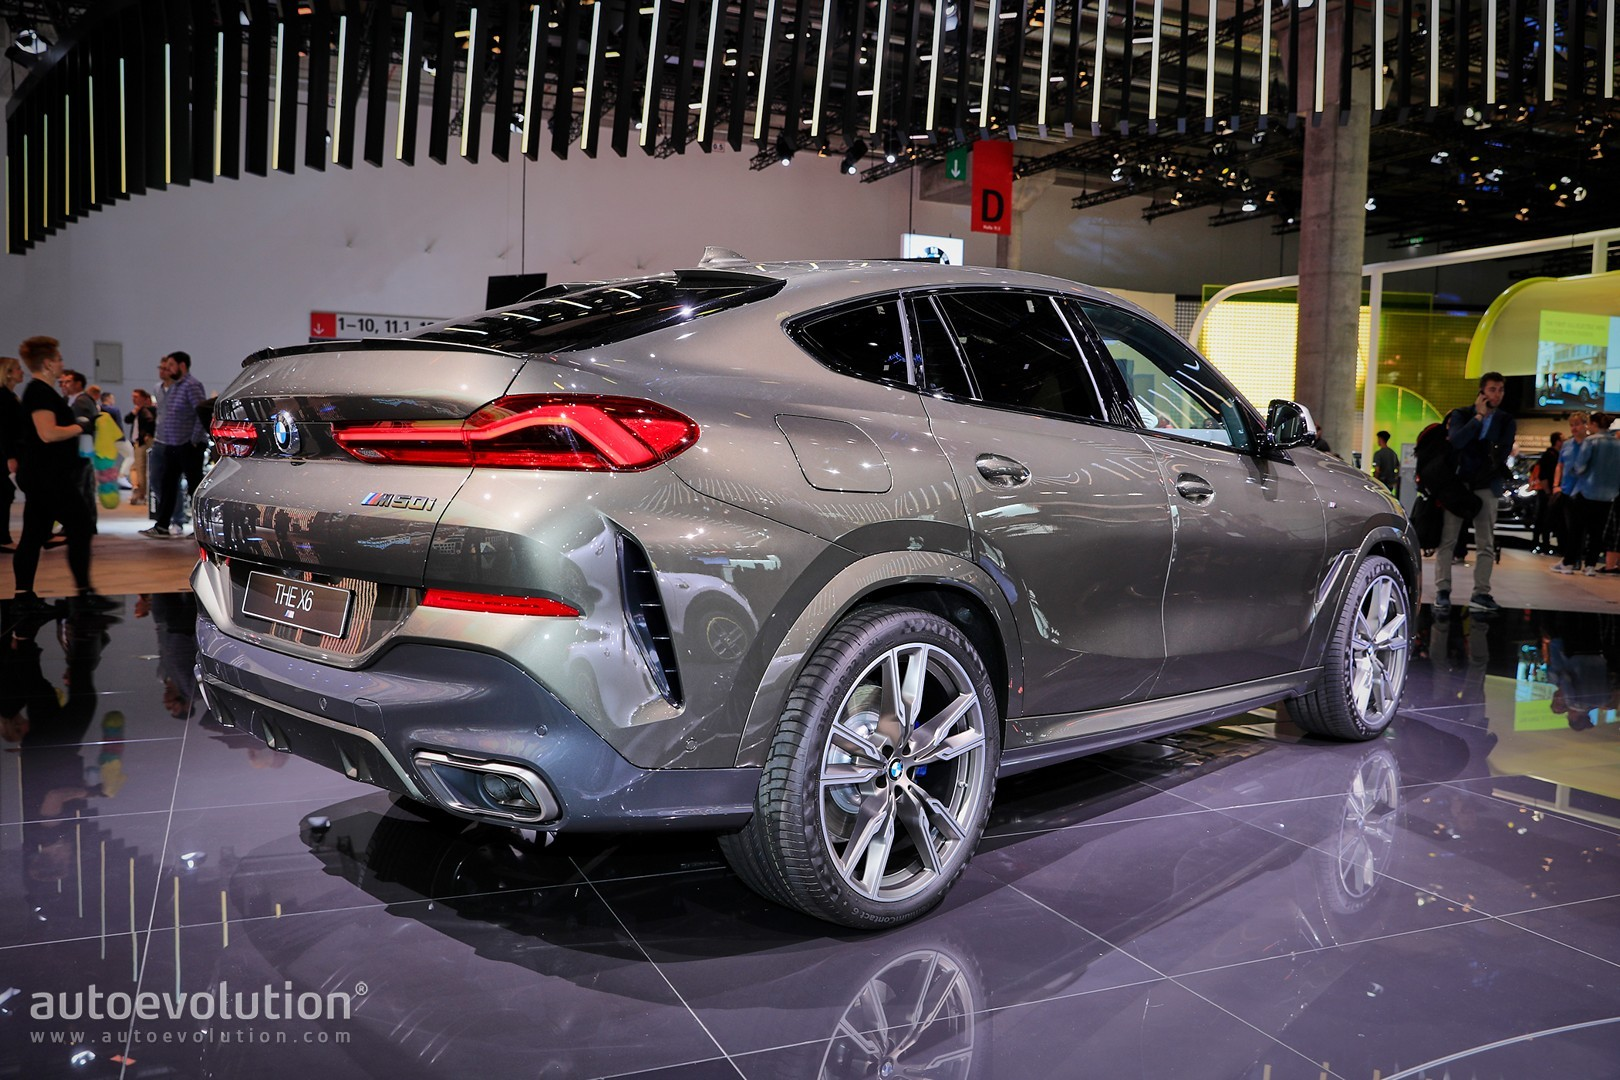 2020 Bmw X6 M50i Revealed In Frankfurt As Ultimate Thug Suv Autoevolution